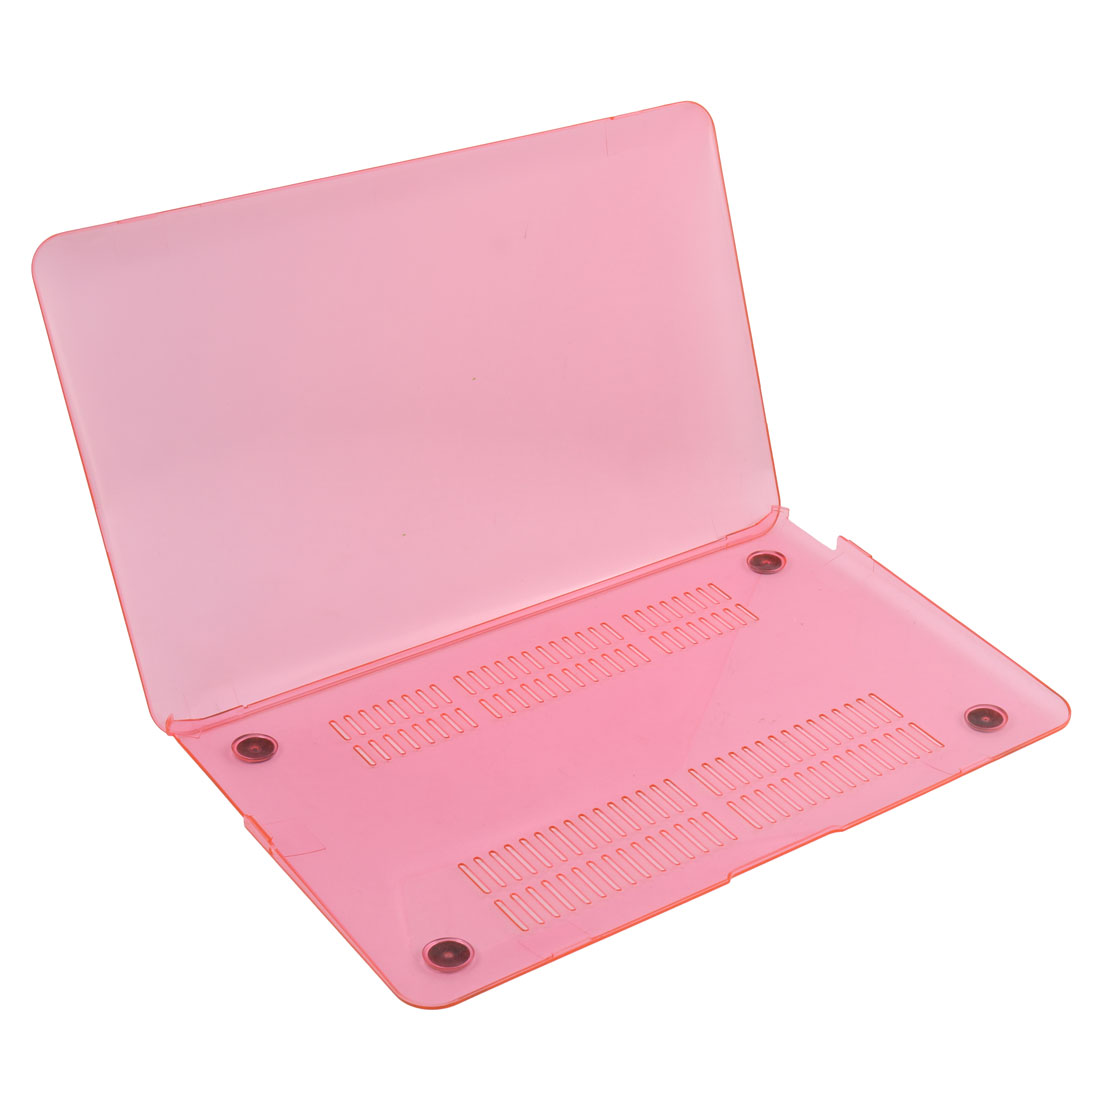 Home Laptop Plastic Anti-dust Shell Protective Hard Case Hot Pink for Macbook Air 11 Inch